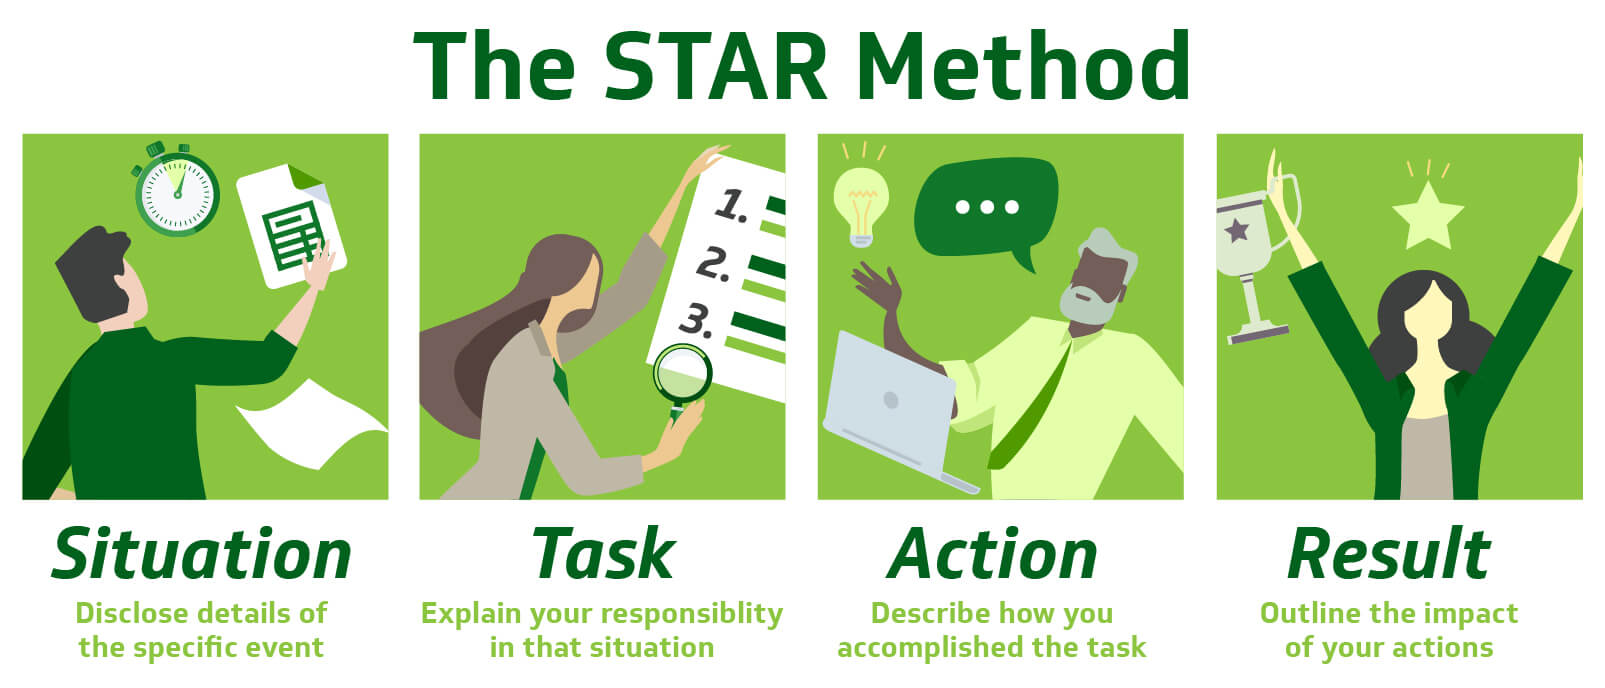 Outlines the STAR Method. Shows a man looking at a list with a stop watch, a woman looking at a list with a magnifying glass, a man with a conversation bubble and a laptop, and a woman with a star over her head and a trophy